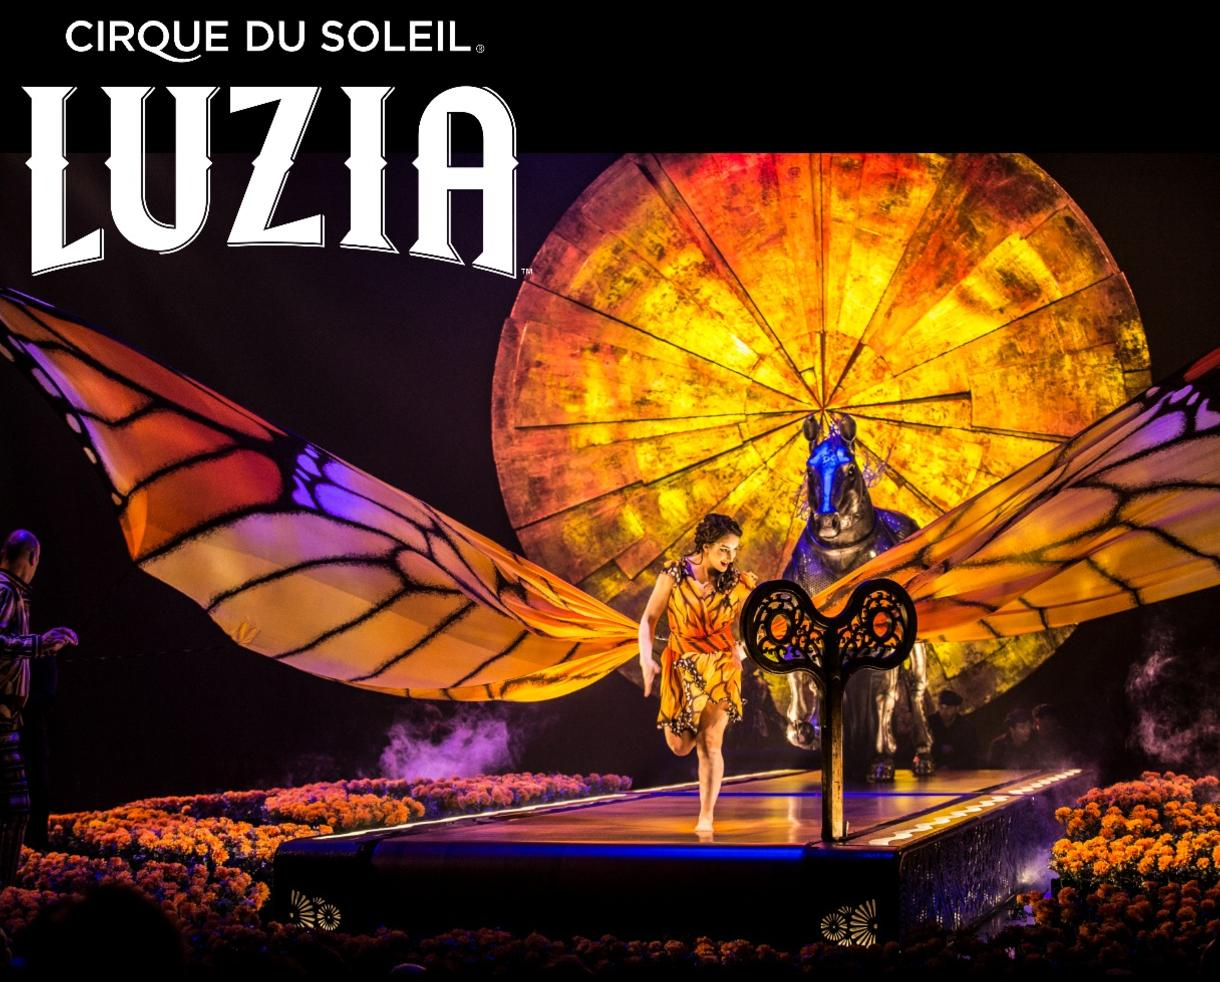 Save Up to 20% Off Tickets to Cirque du Soleil's LUZIA - April 13 - May 13 at Tysons Corner